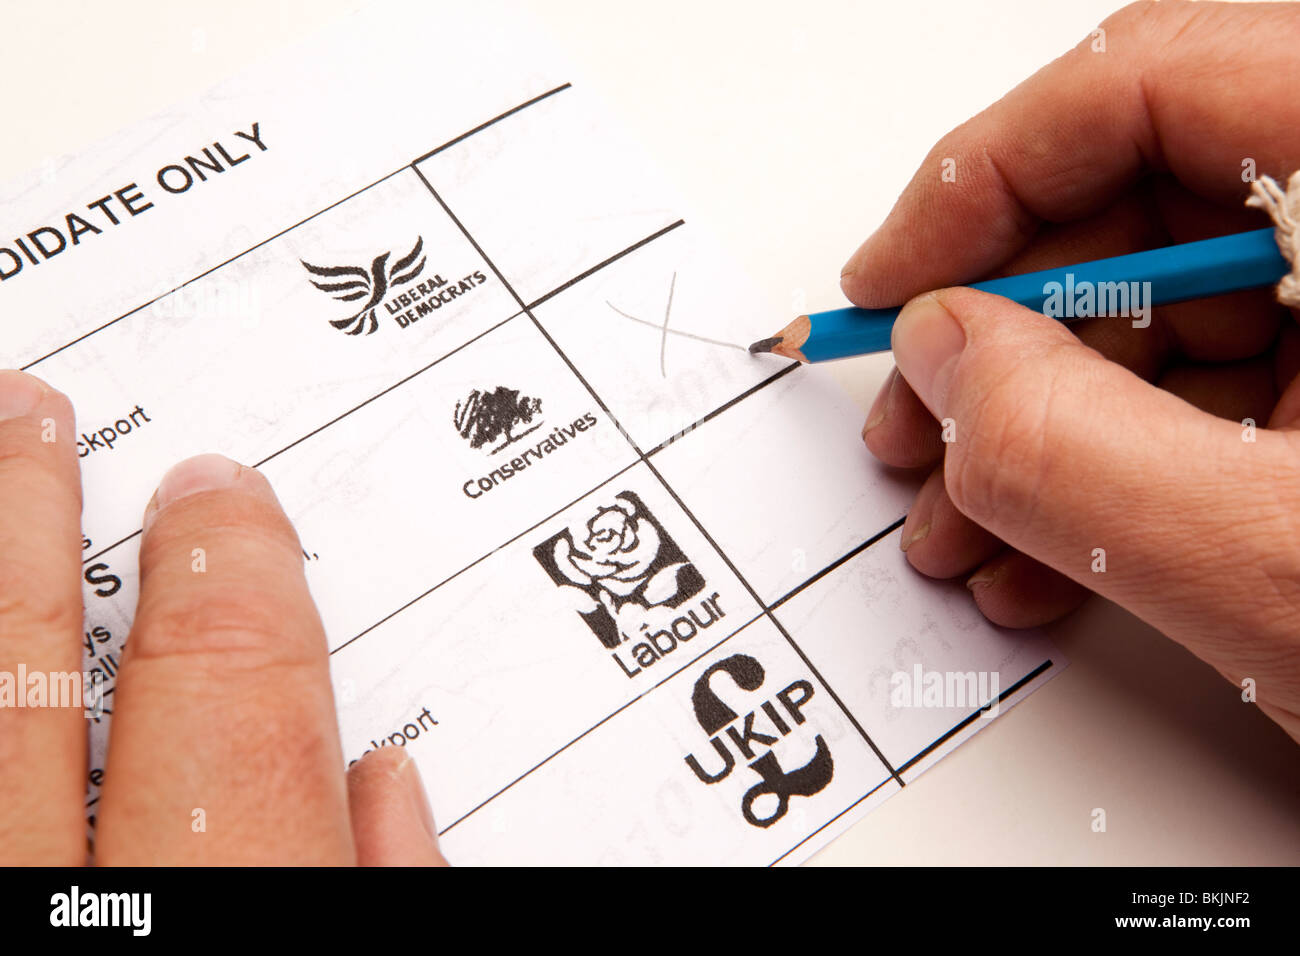 UK Elections man voting on ballot paper for Conservative candidate - Stock Image